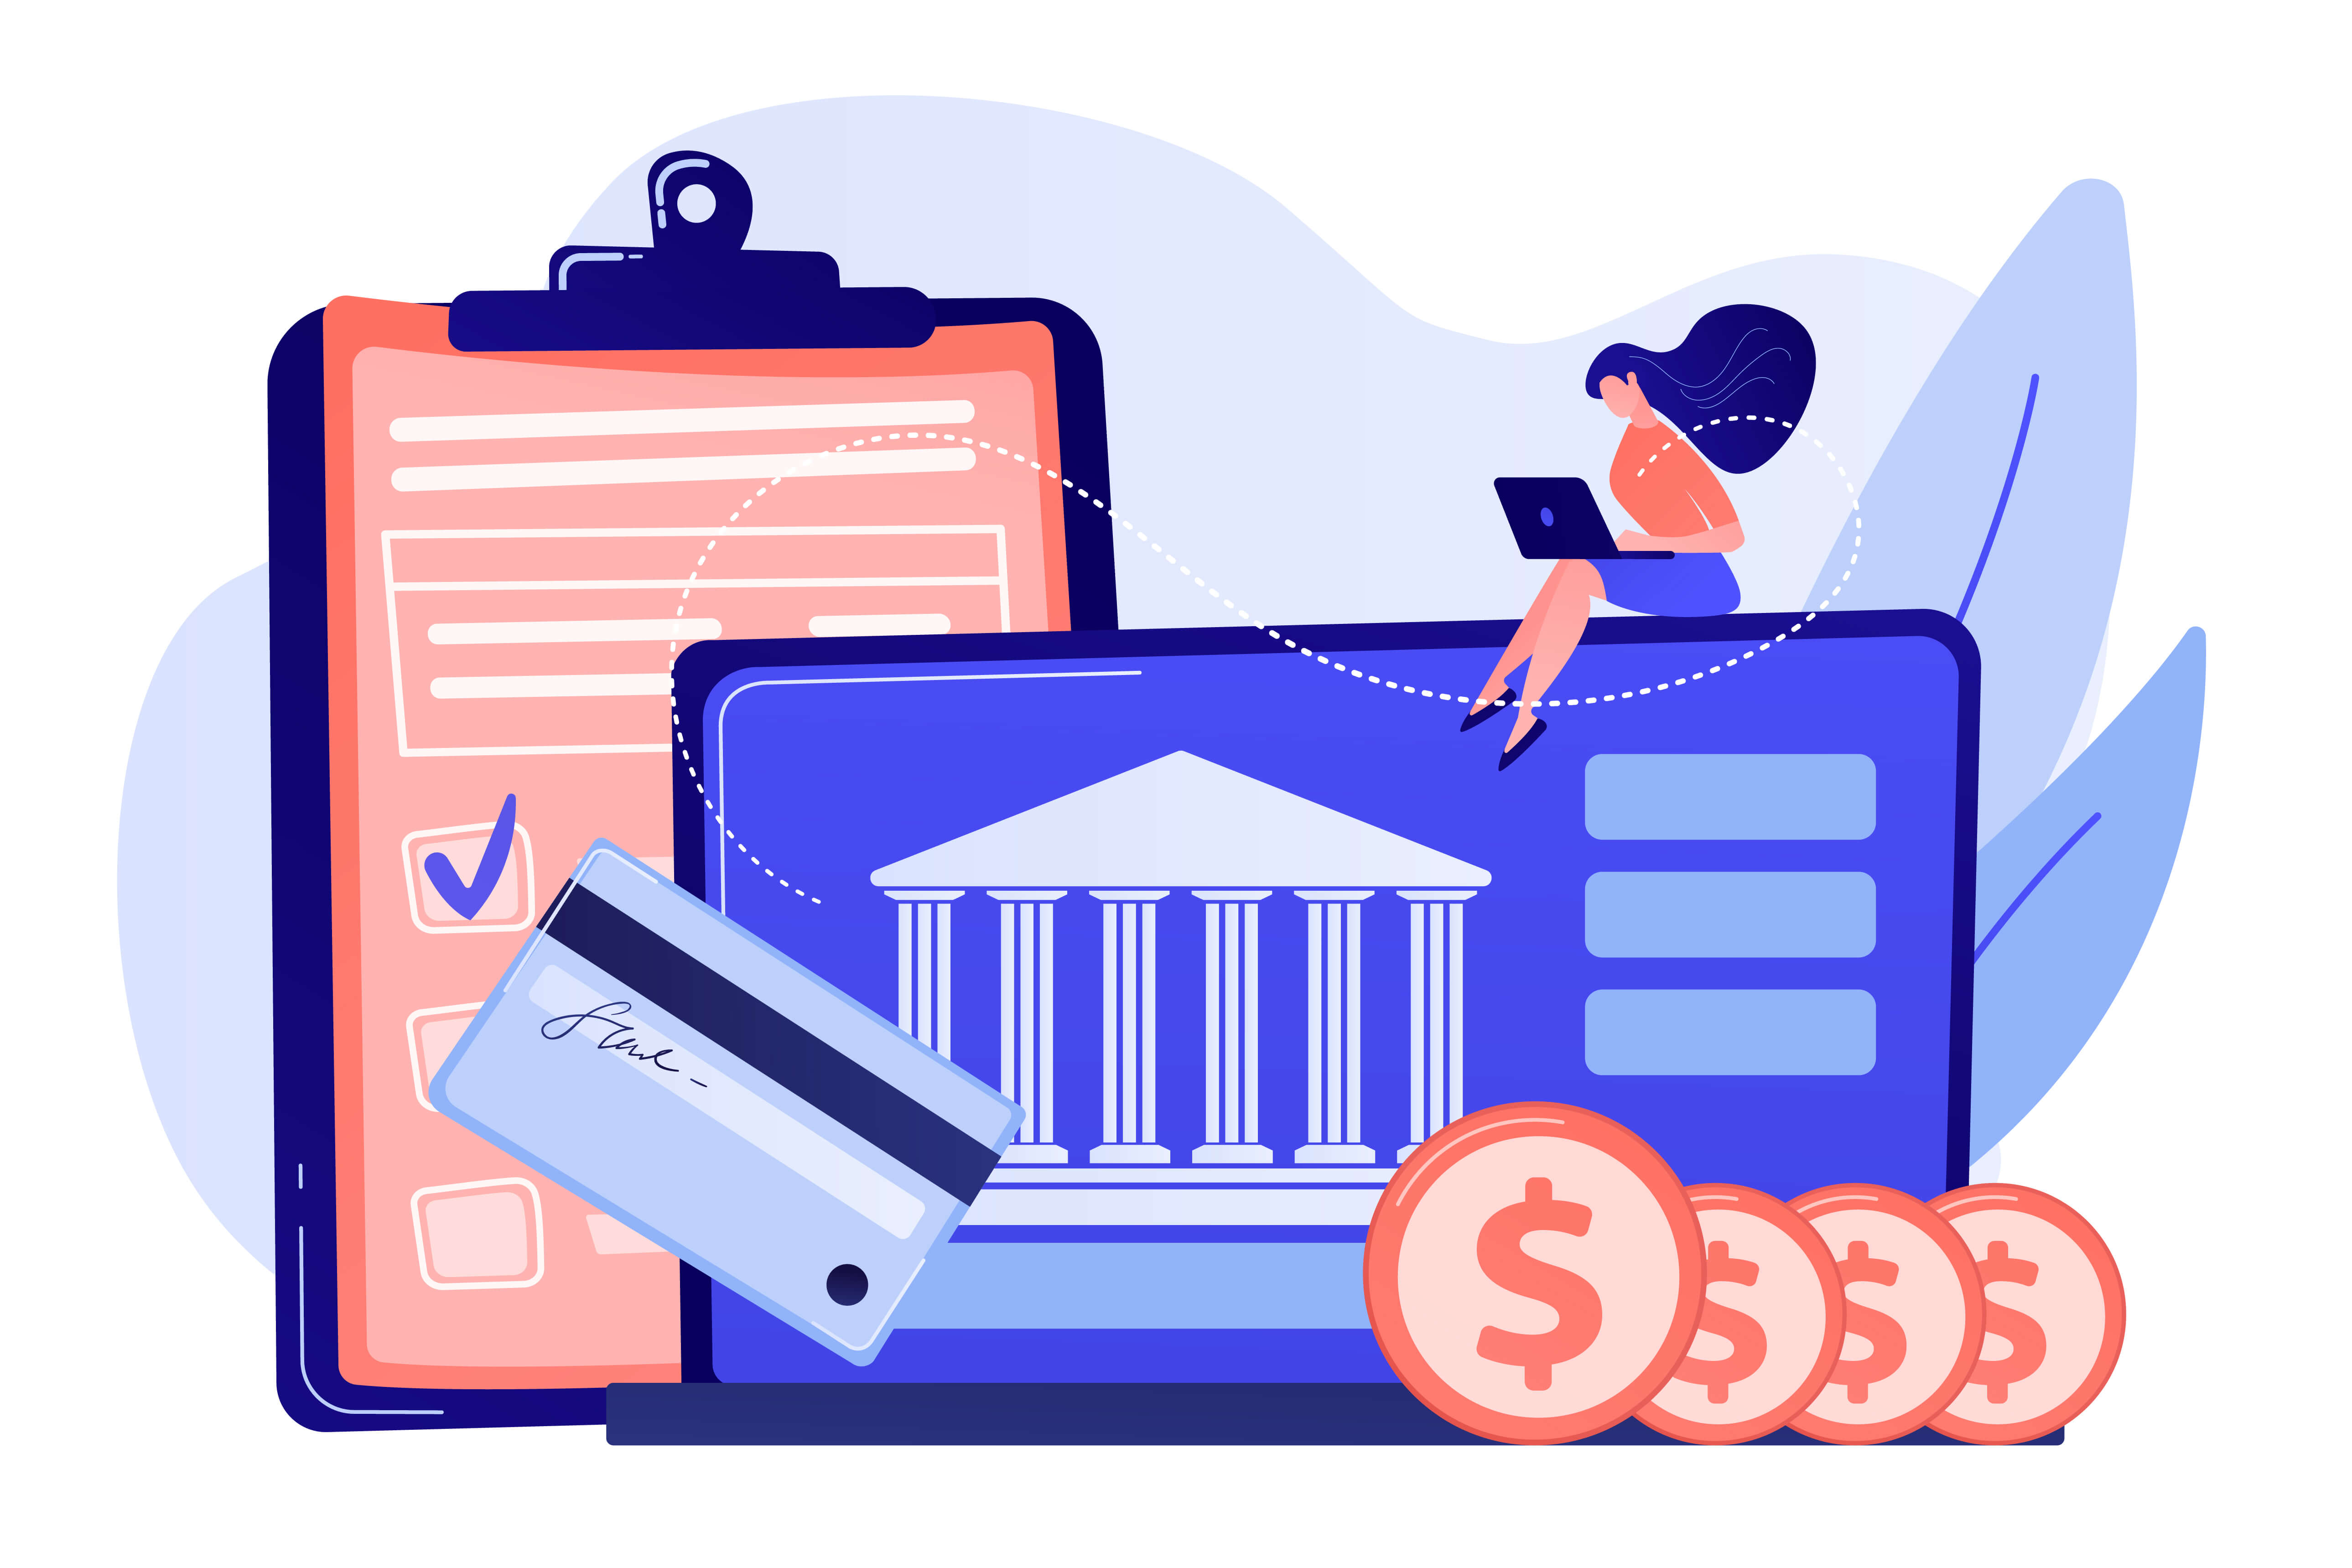 How To Deposit Funds Into Your Exness Account